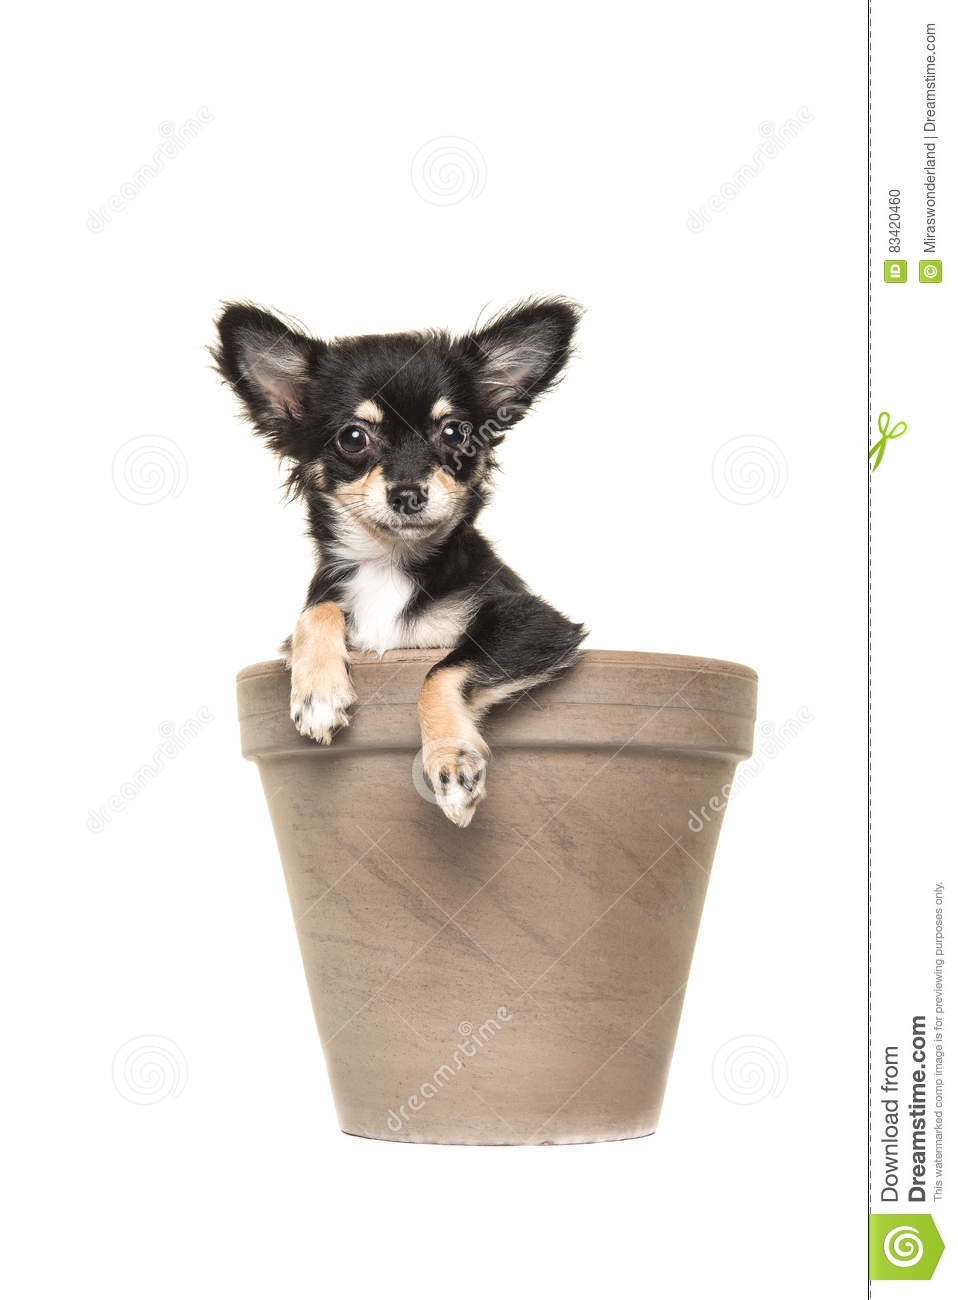 Chihuahua puppy in a brown flower pot